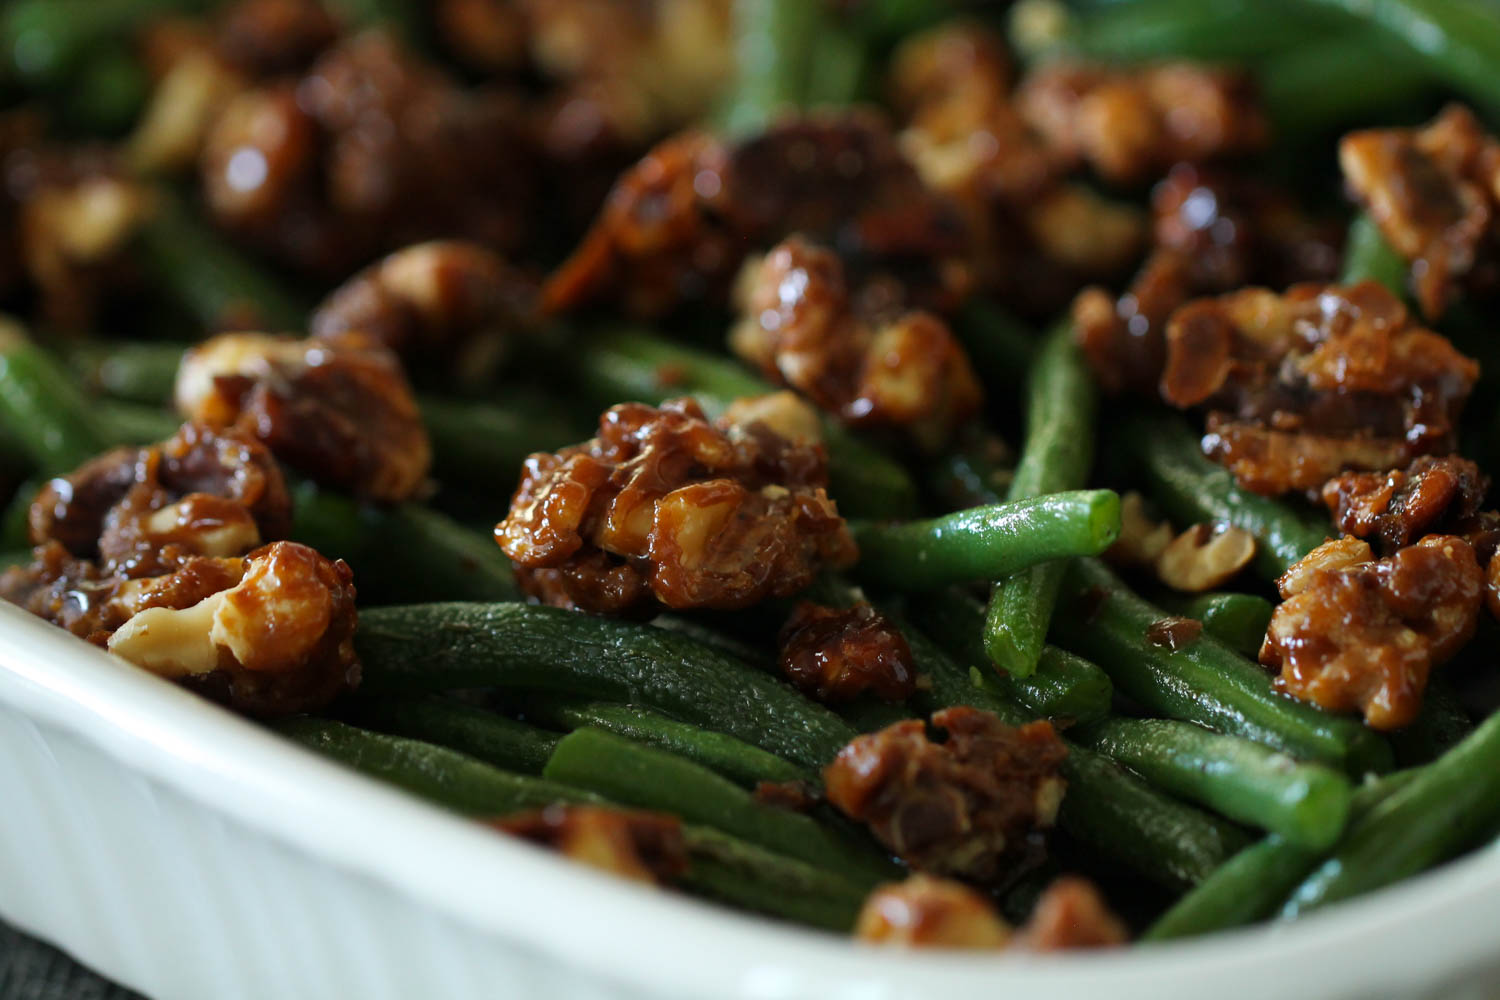 cooked green beans topped with candied pecans in a white dish